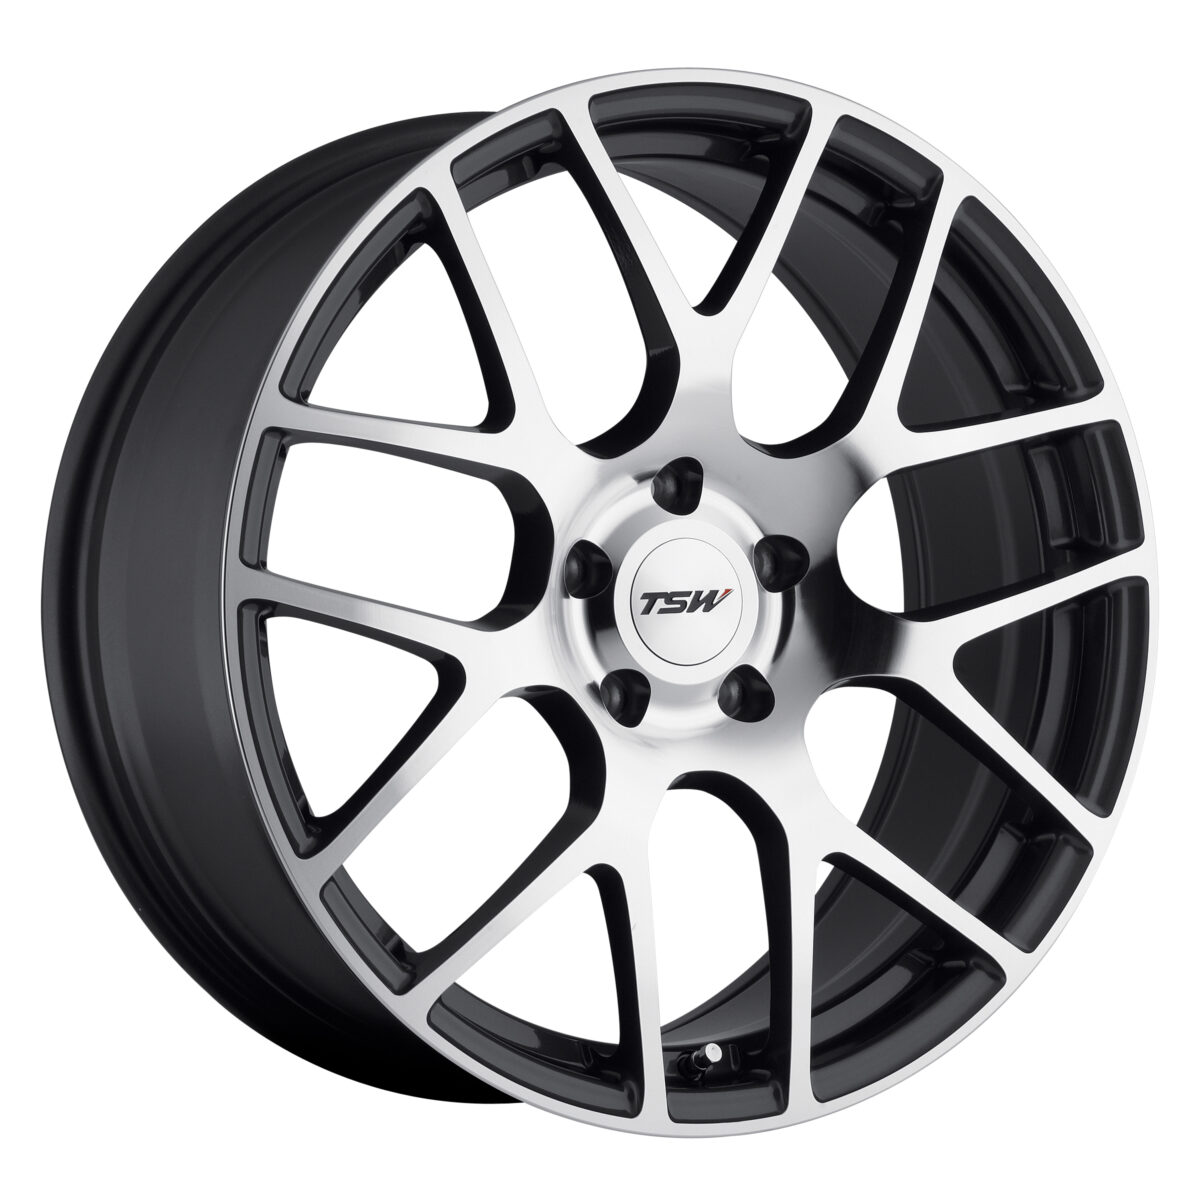 "Pitstop Tyre's TSW Nurburgring 18"" wheel for sale in Singapore"